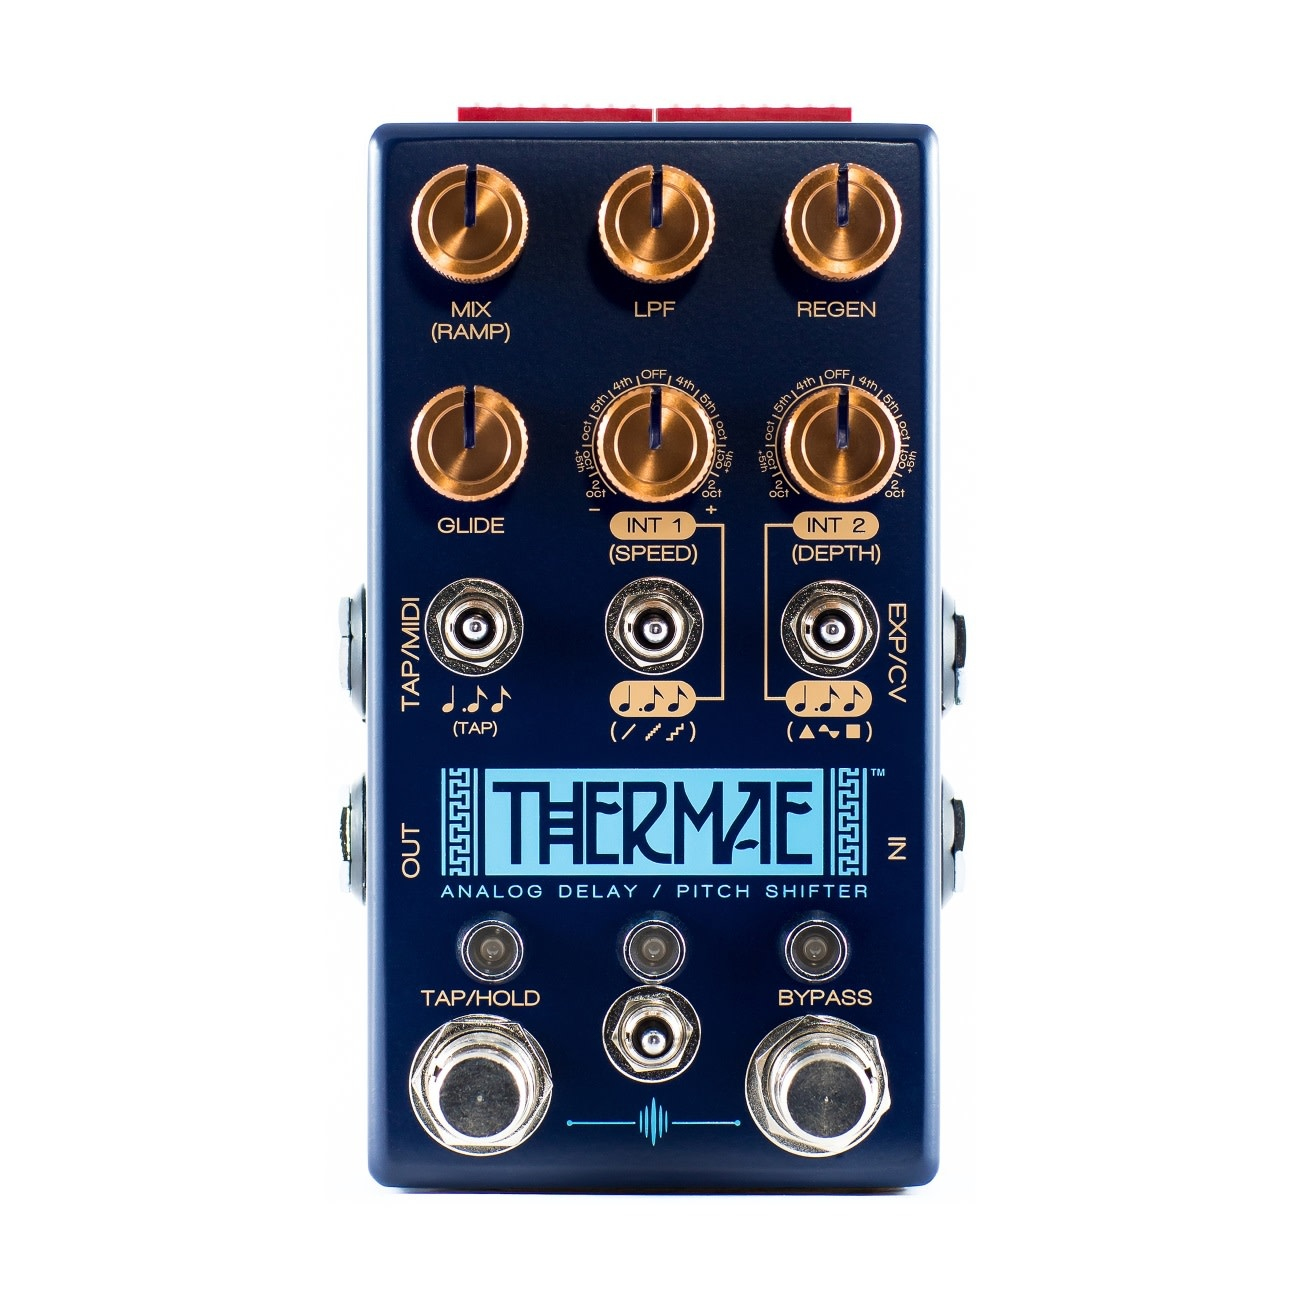 Chase Bliss NEW Chase Bliss Audio Thermae Analog Delay/Pitch Shifter